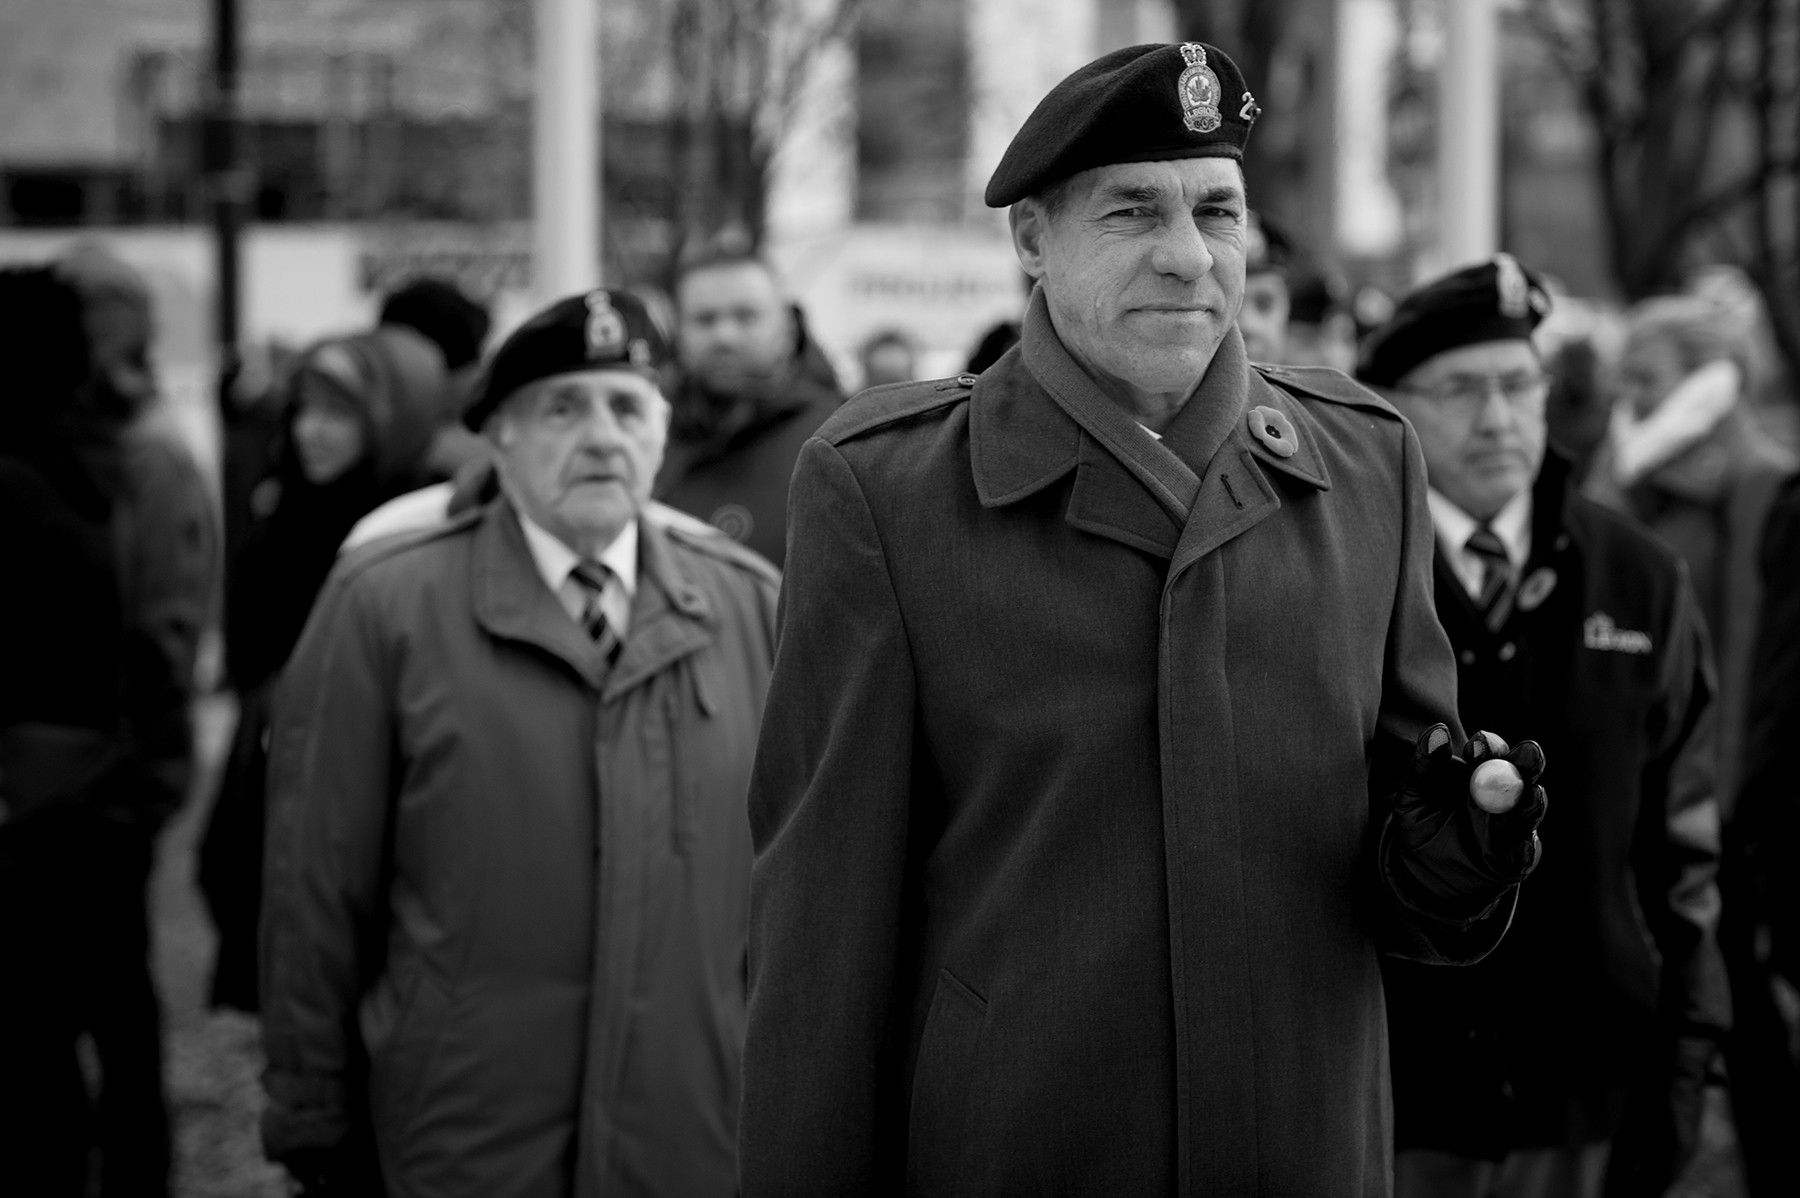 Veterans of Royal Canadian Legion Branch #235 Chicoutimi parade during the 2 Wing Bagotville, Quebec, Remembrance Day ceremony that took place November 8, 2015, in Saguenay, Quebec. PHOTO: Leading Seaman Alex Roy